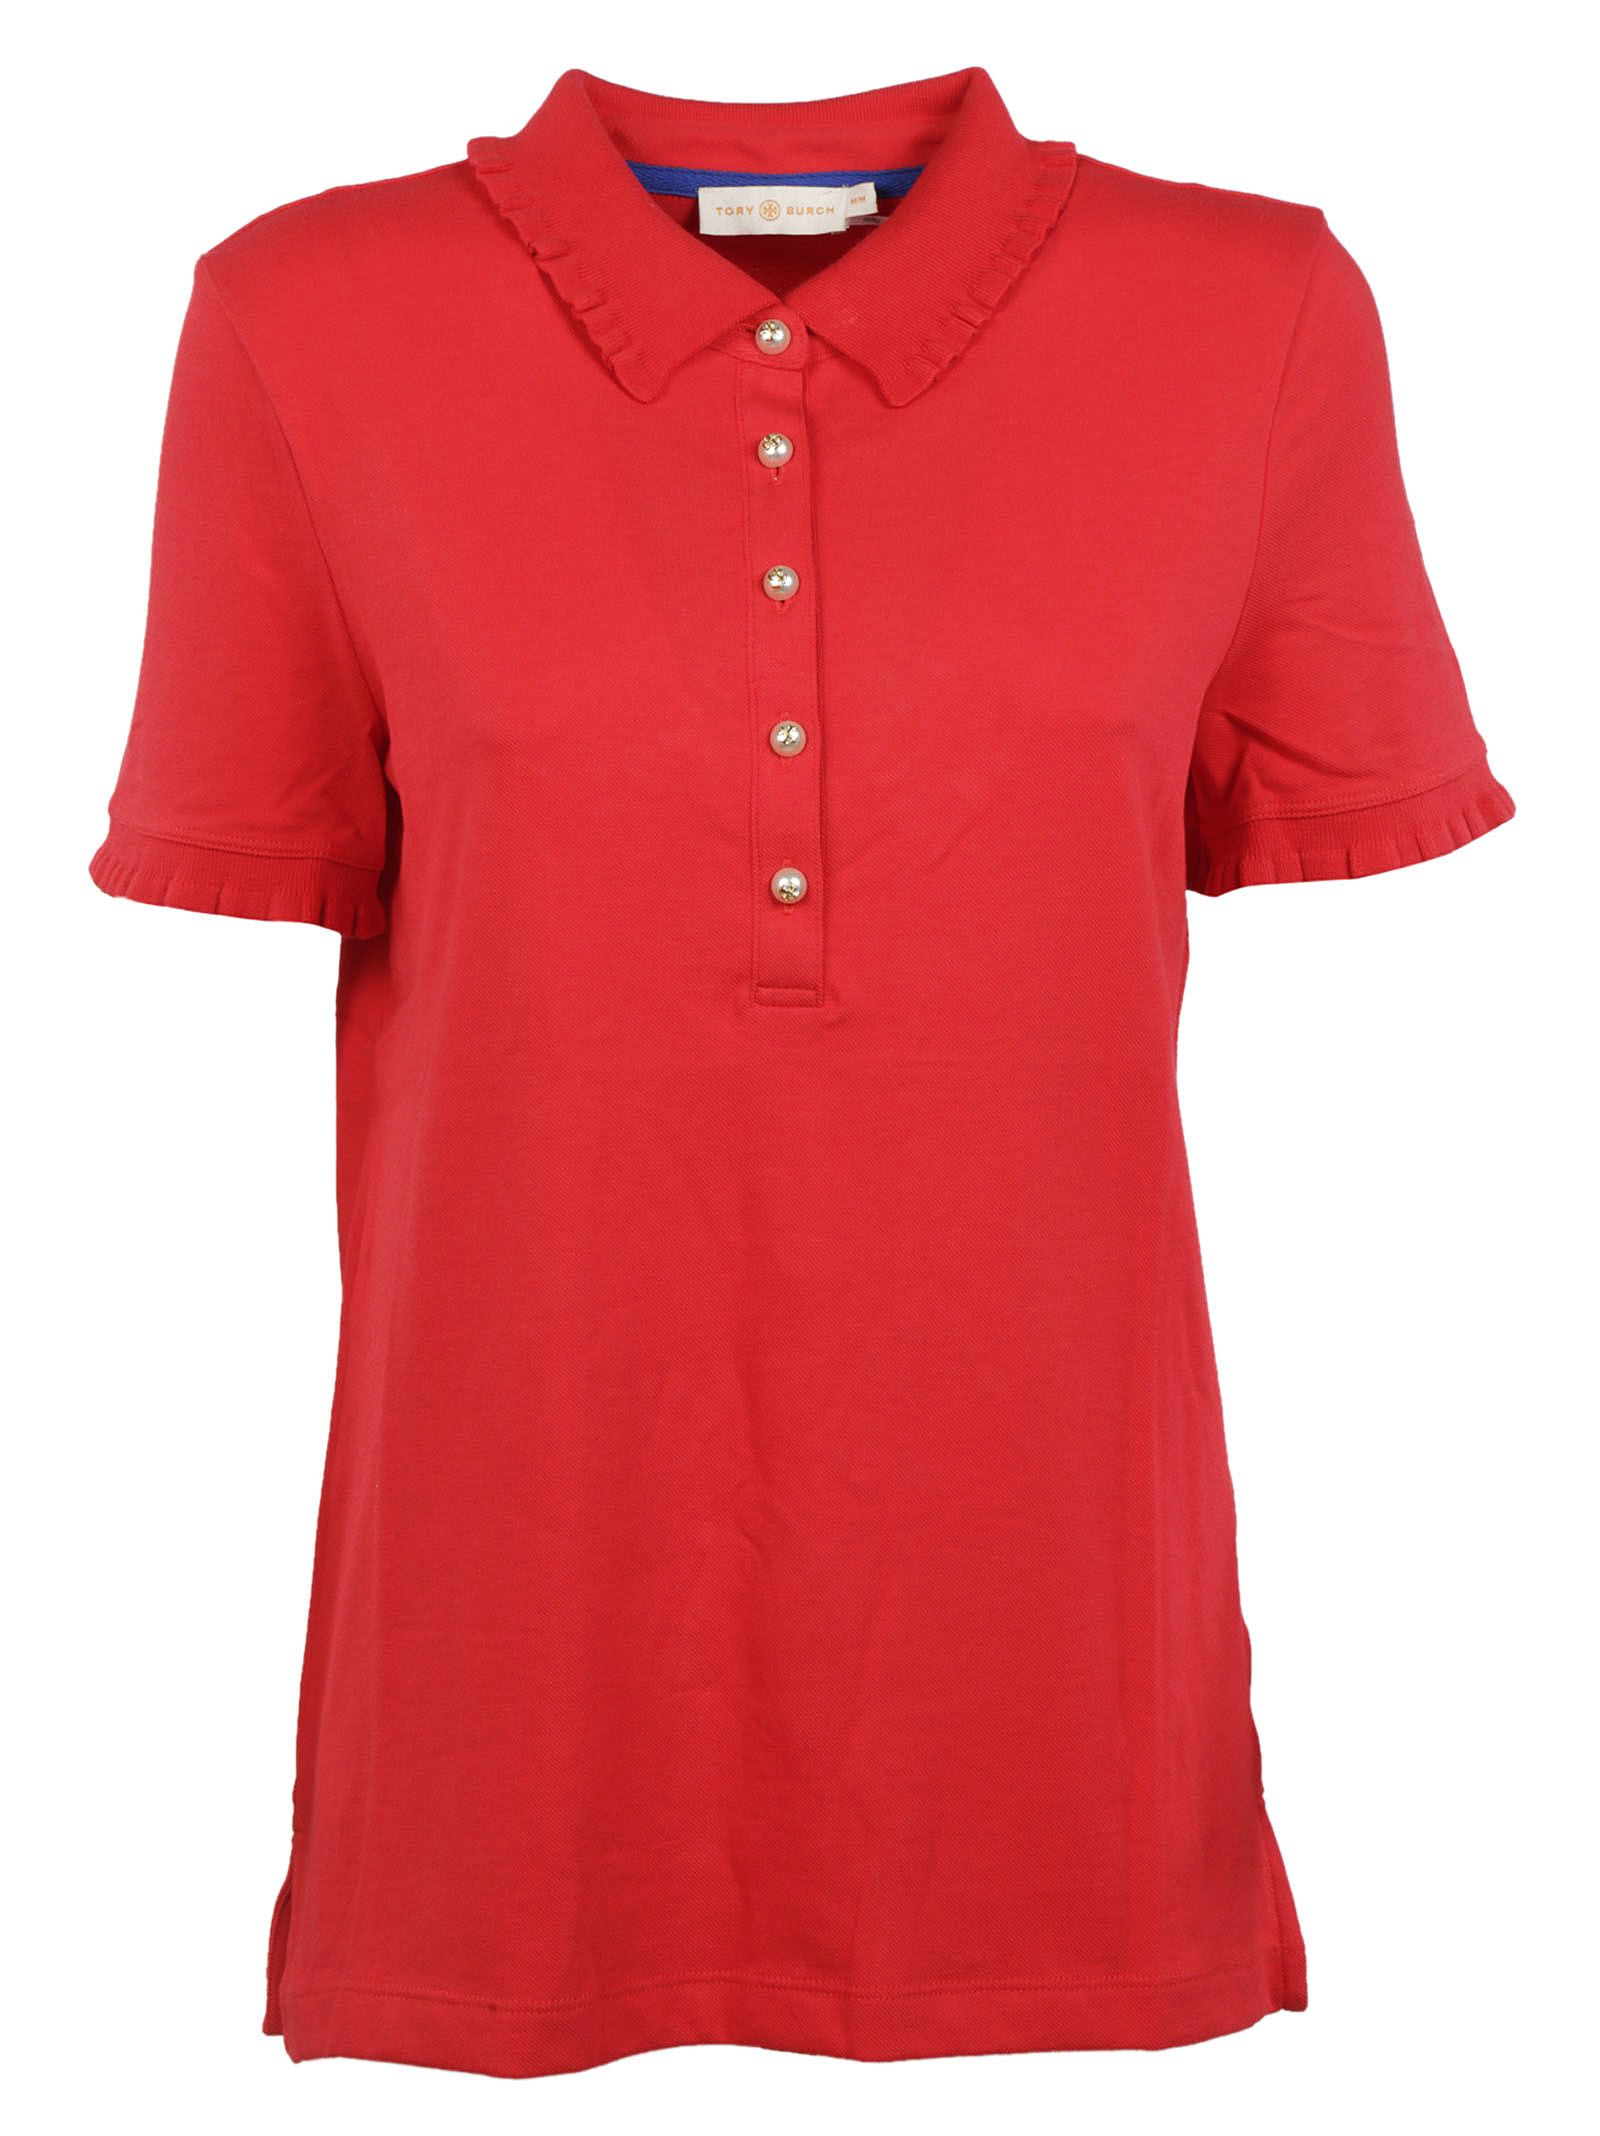 Tory Burch Ruffled Polo Shirt